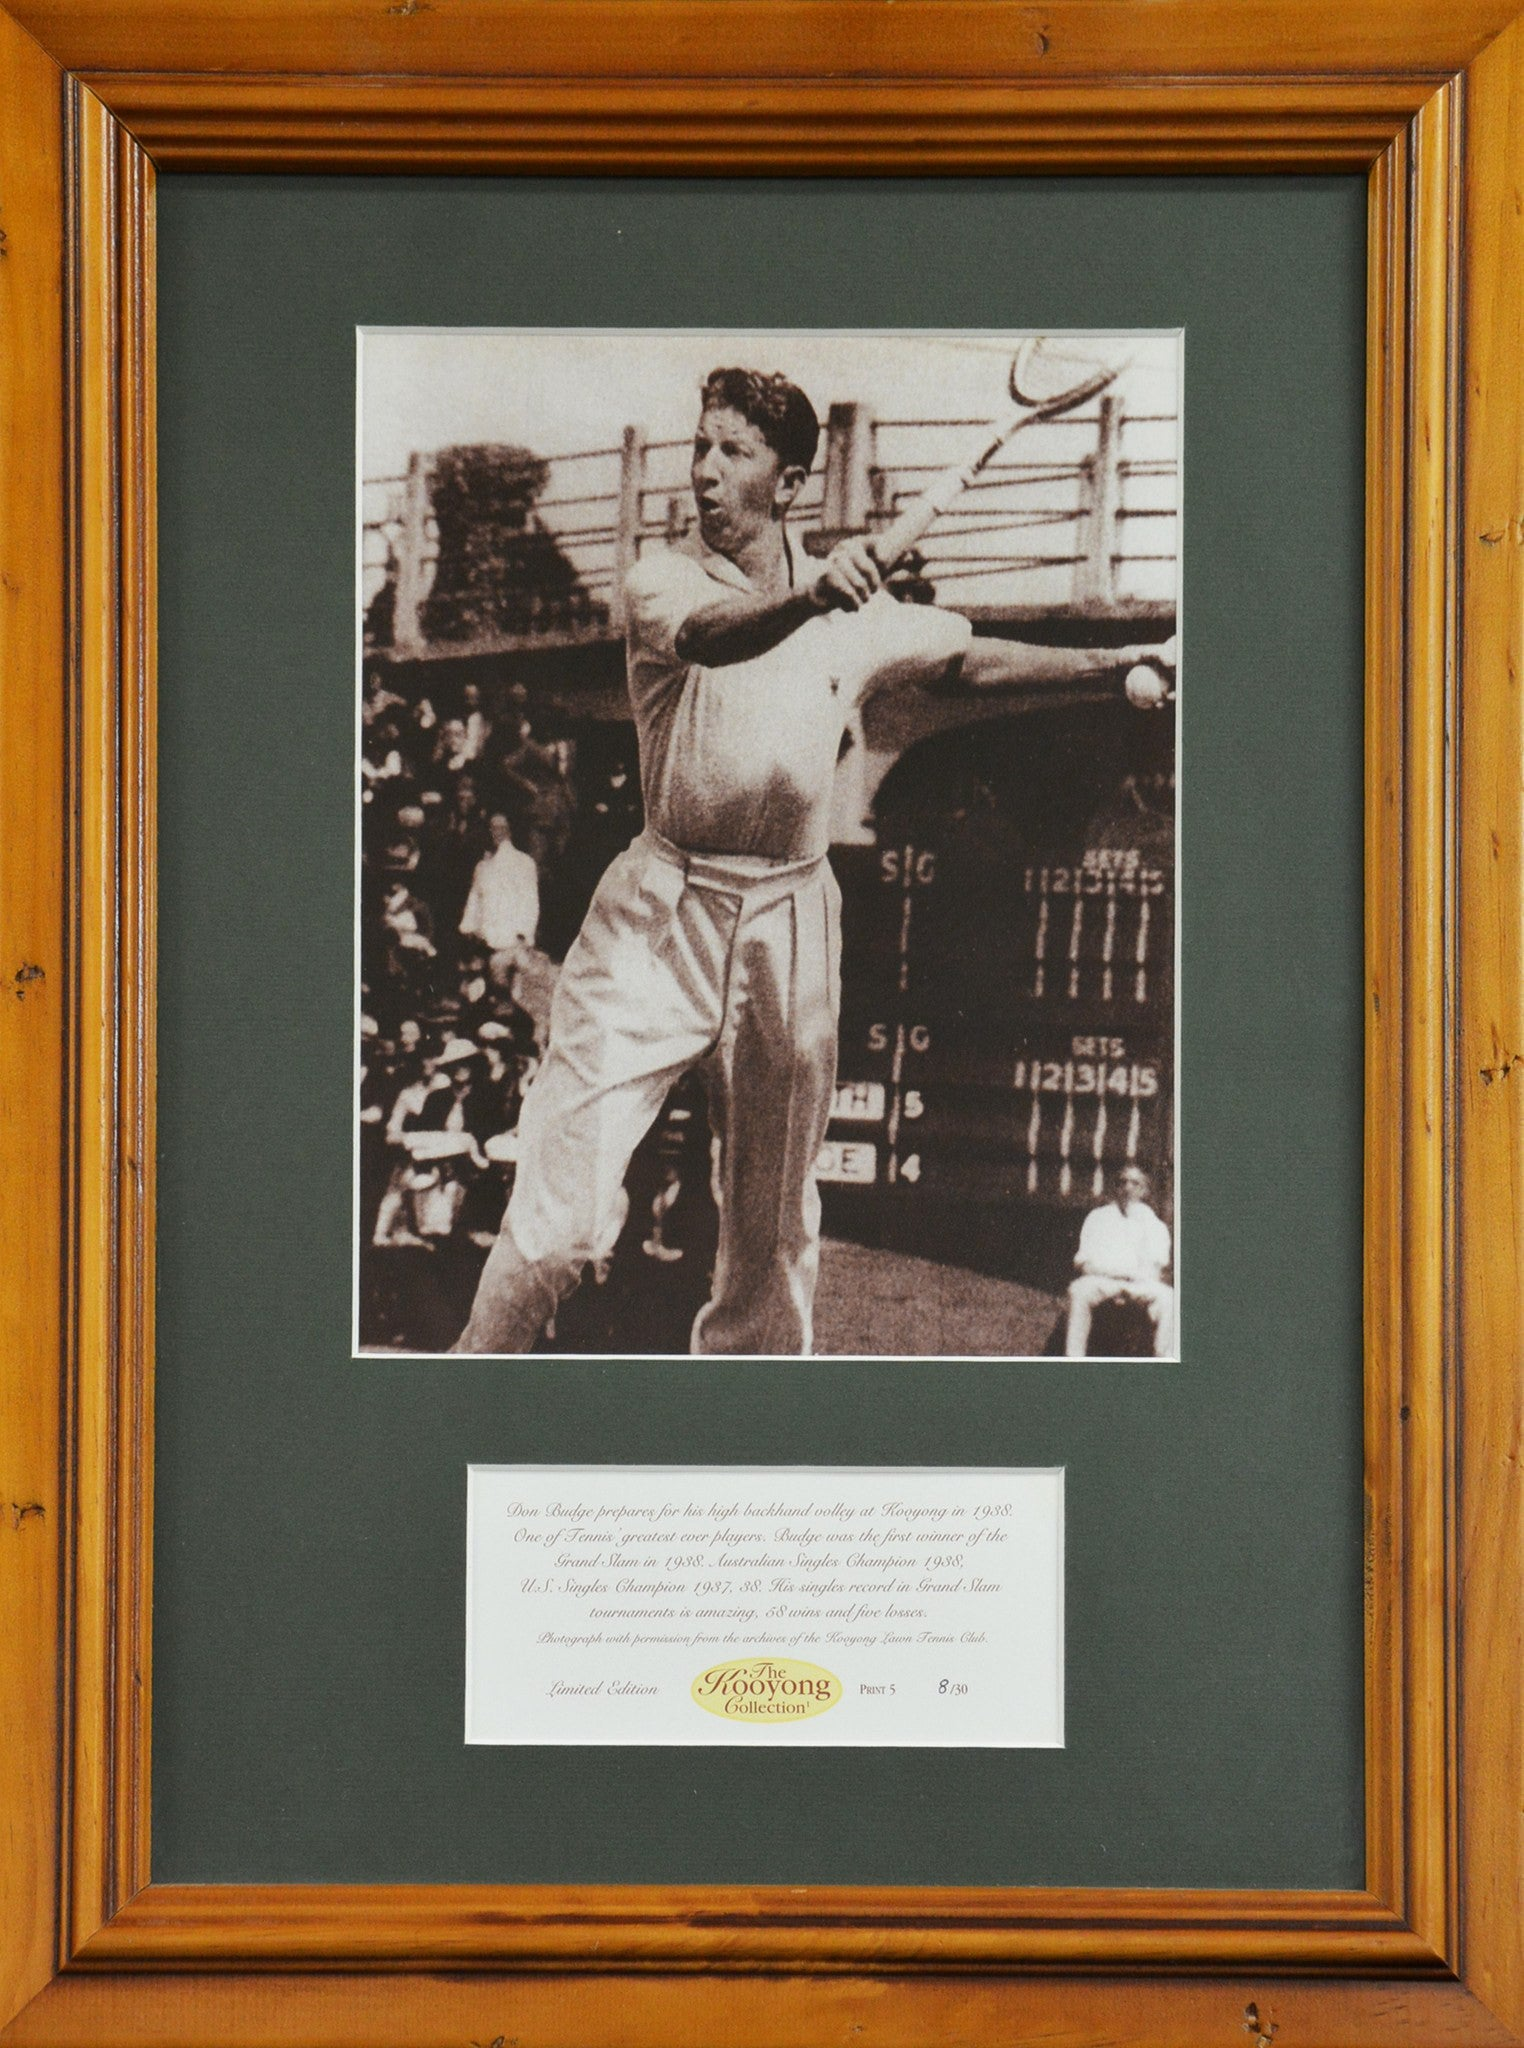 Don Budge Kooyong Collection Framed graph Tennis Rare